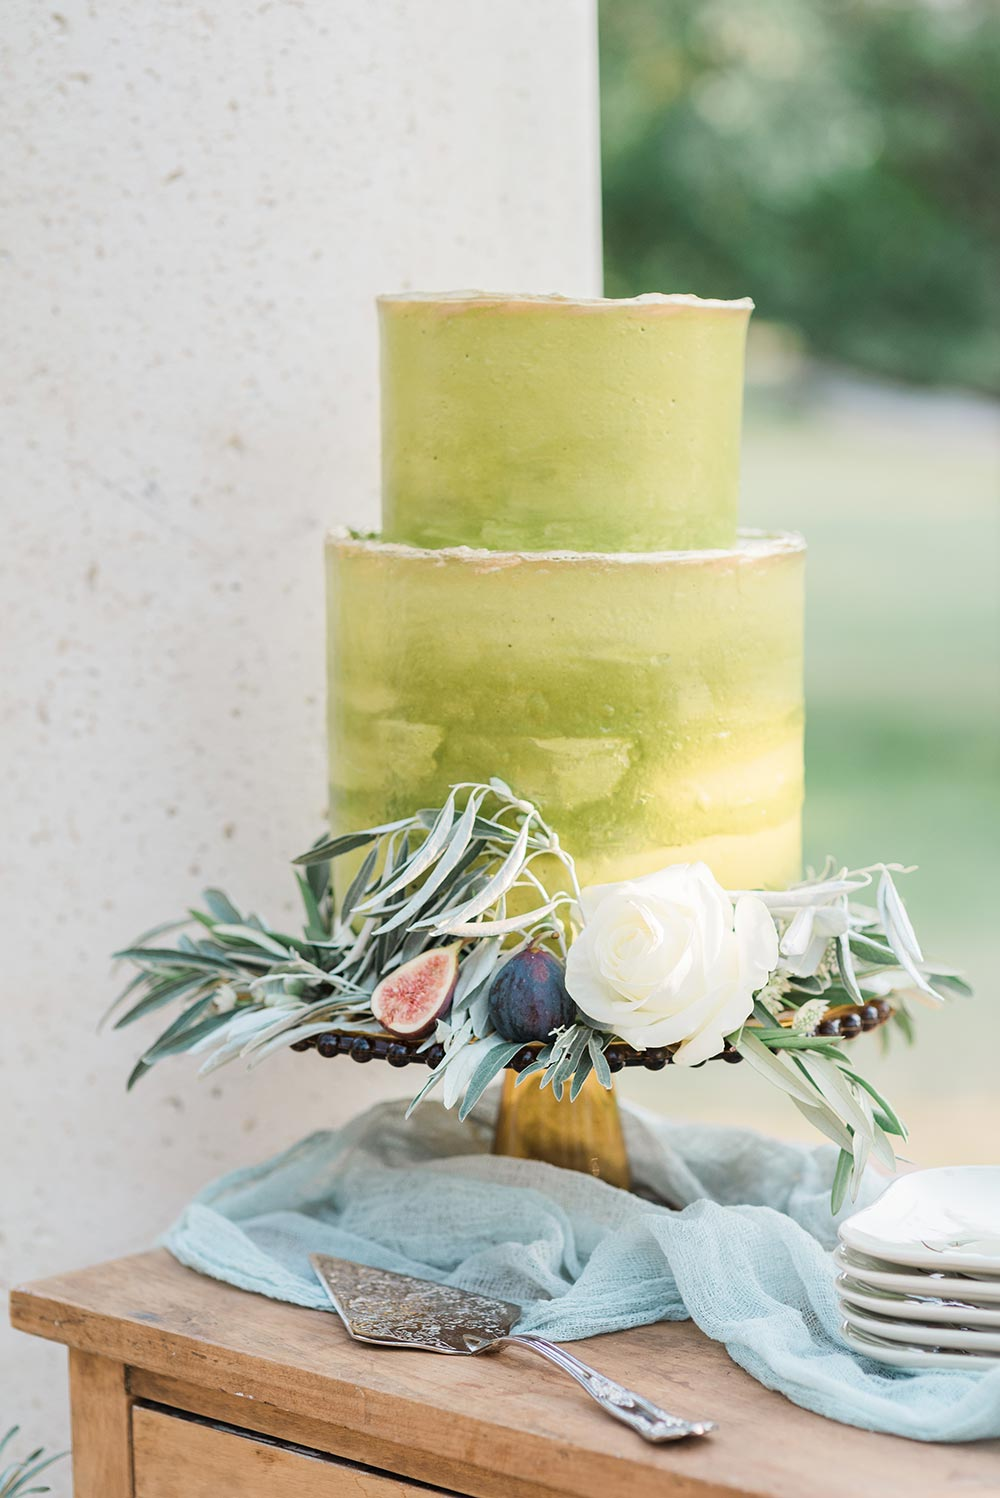 lime green wedding cake with deckled edges